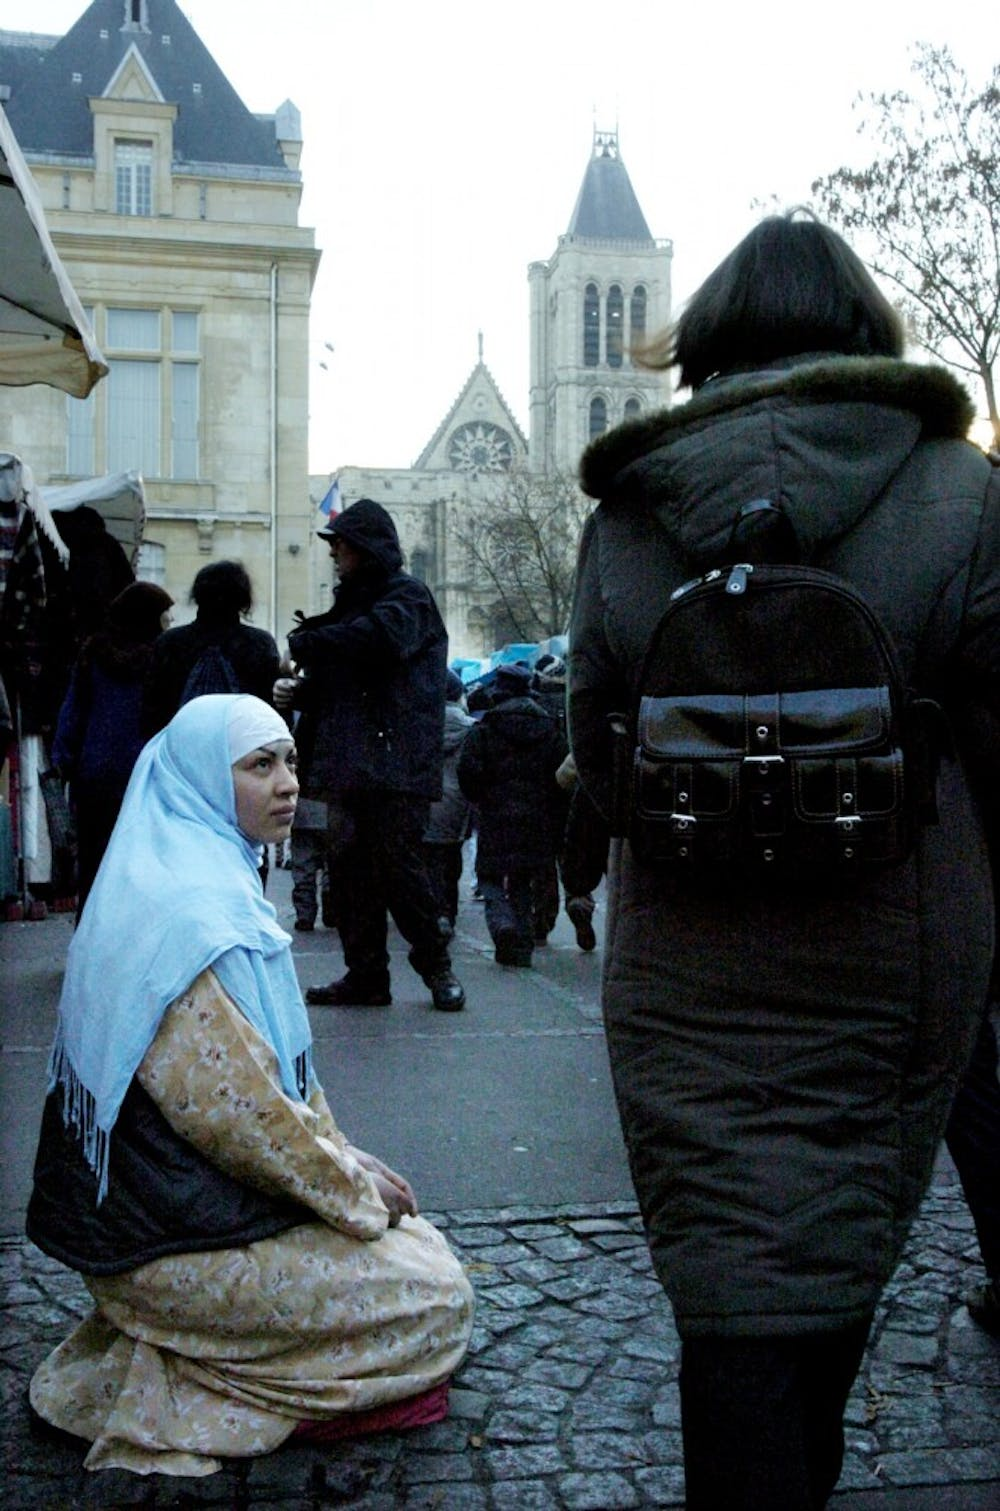 Women's attire in Islam is personal expression